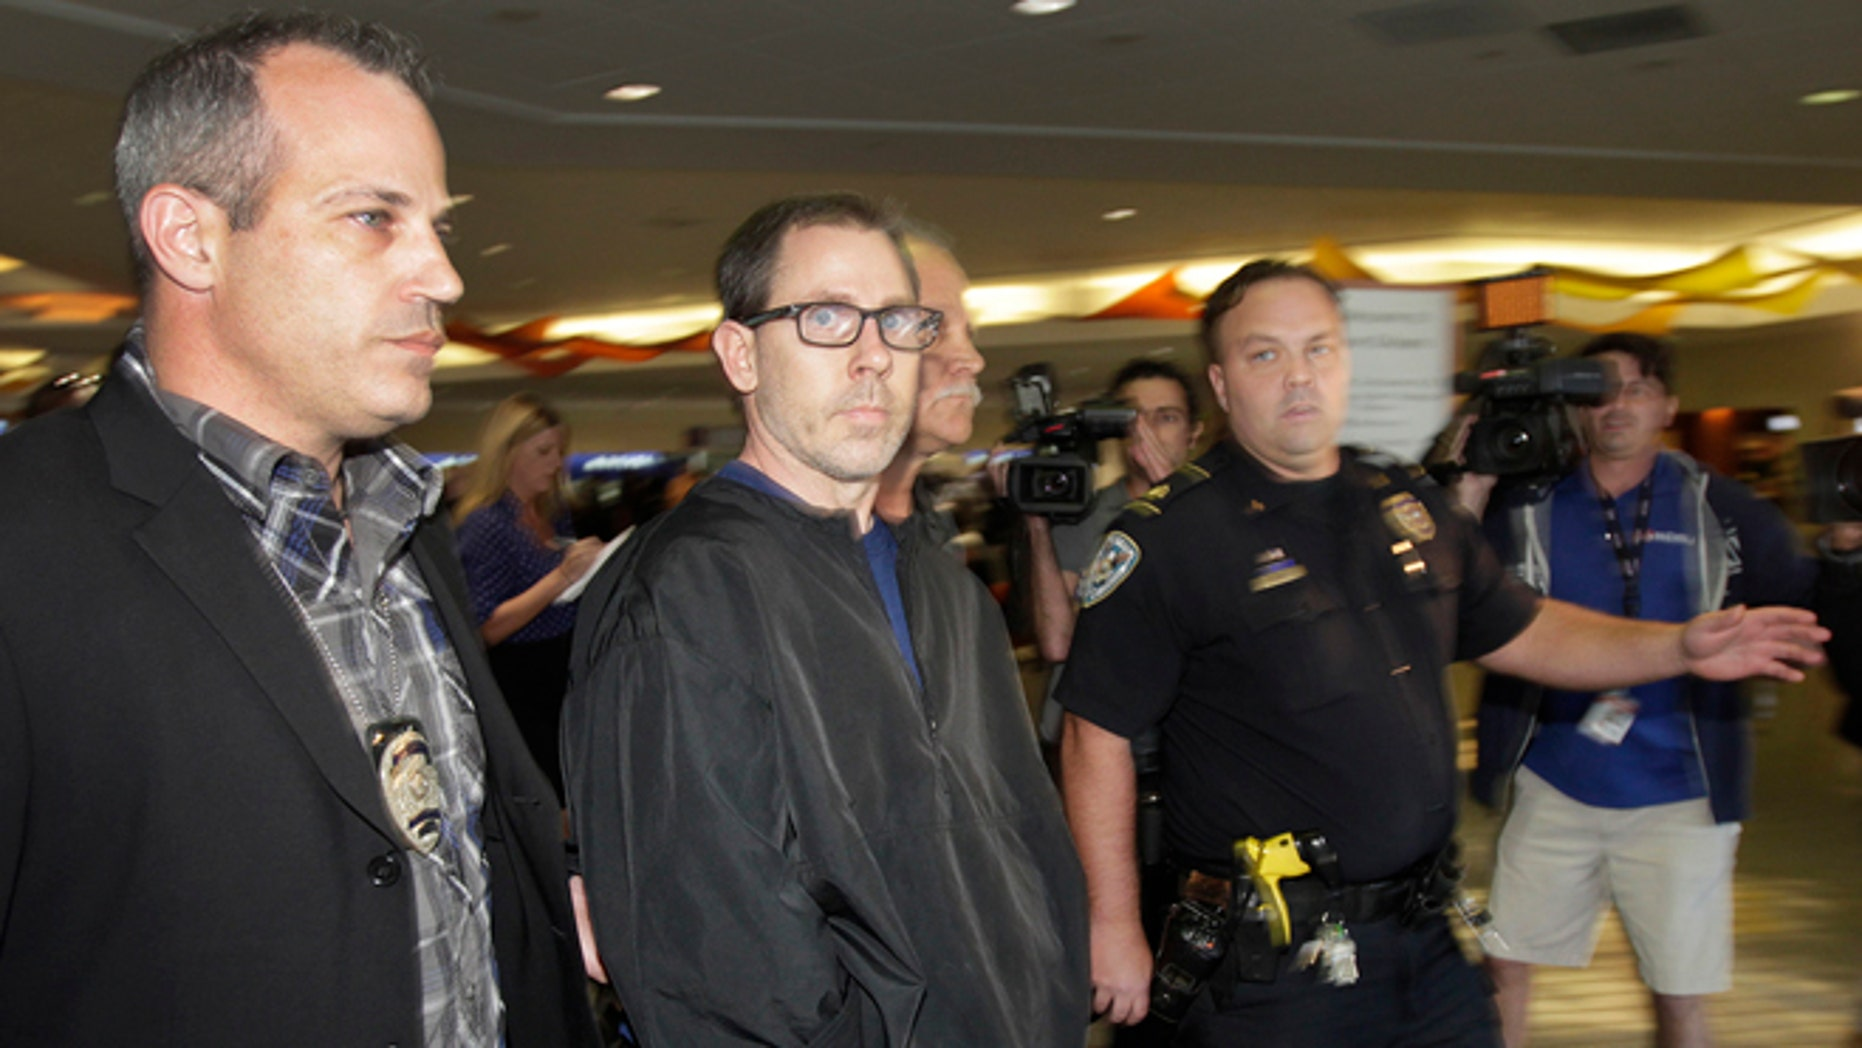 FILE - In a Oct. 15, 2014 file photo, Terry Speaks, center, a suspect in the 2012 stabbing and dismemberment of a Bourbon Street strip club dancer, arrives under heavy police guard at Louis Armstrong International Airport in Kenner, La. Trial is set to open Monday, June 15, 2015, for Speaks, accused of killing a New Orleans' French Quarter stripper in 2012, dismembering her and dumping body parts of the woman into the Gulf of Mexico. (Chris Granger/NOLA.com The Times-Picayune via AP, File) MAGS OUT; NO SALES; USA TODAY OUT; THE BATON ROUGE ADVOCATE OUT